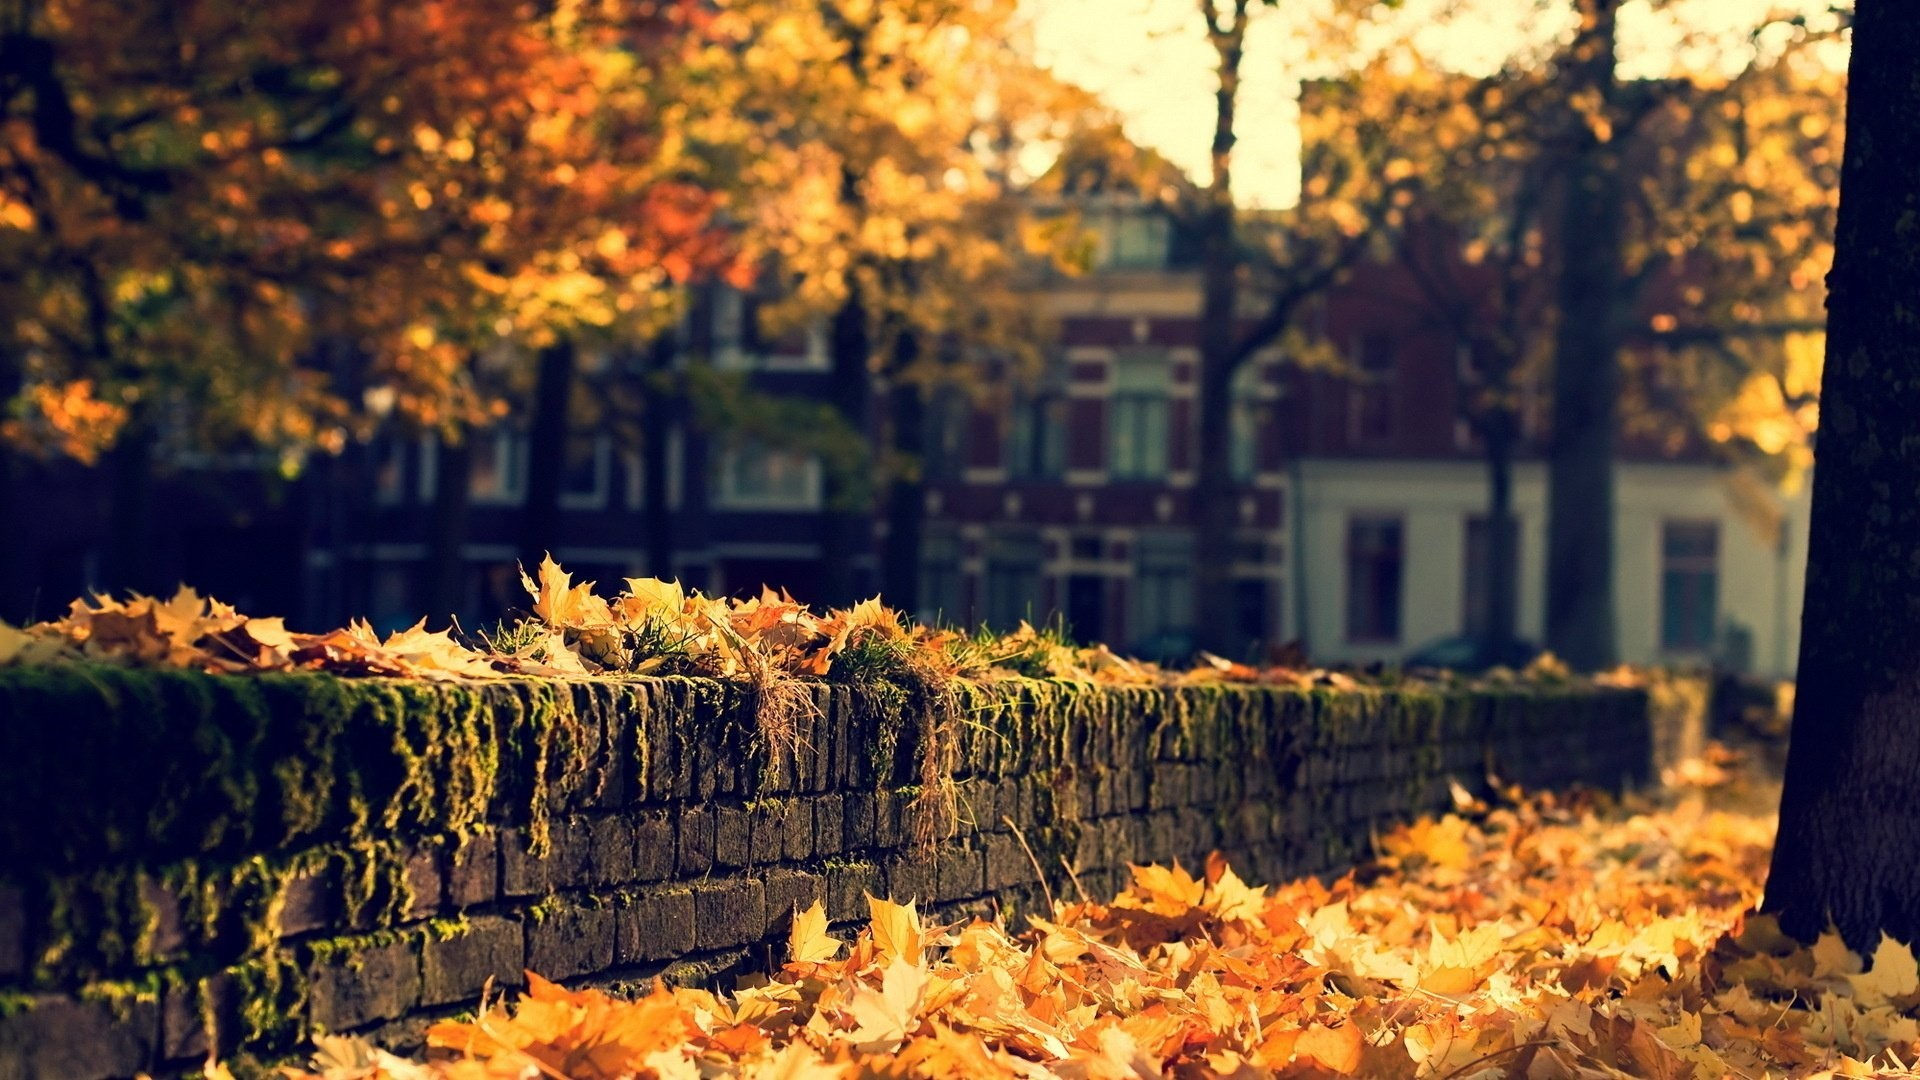 1920x1080 City Autumn Nature Street Beauty Hd Wallpapers  -